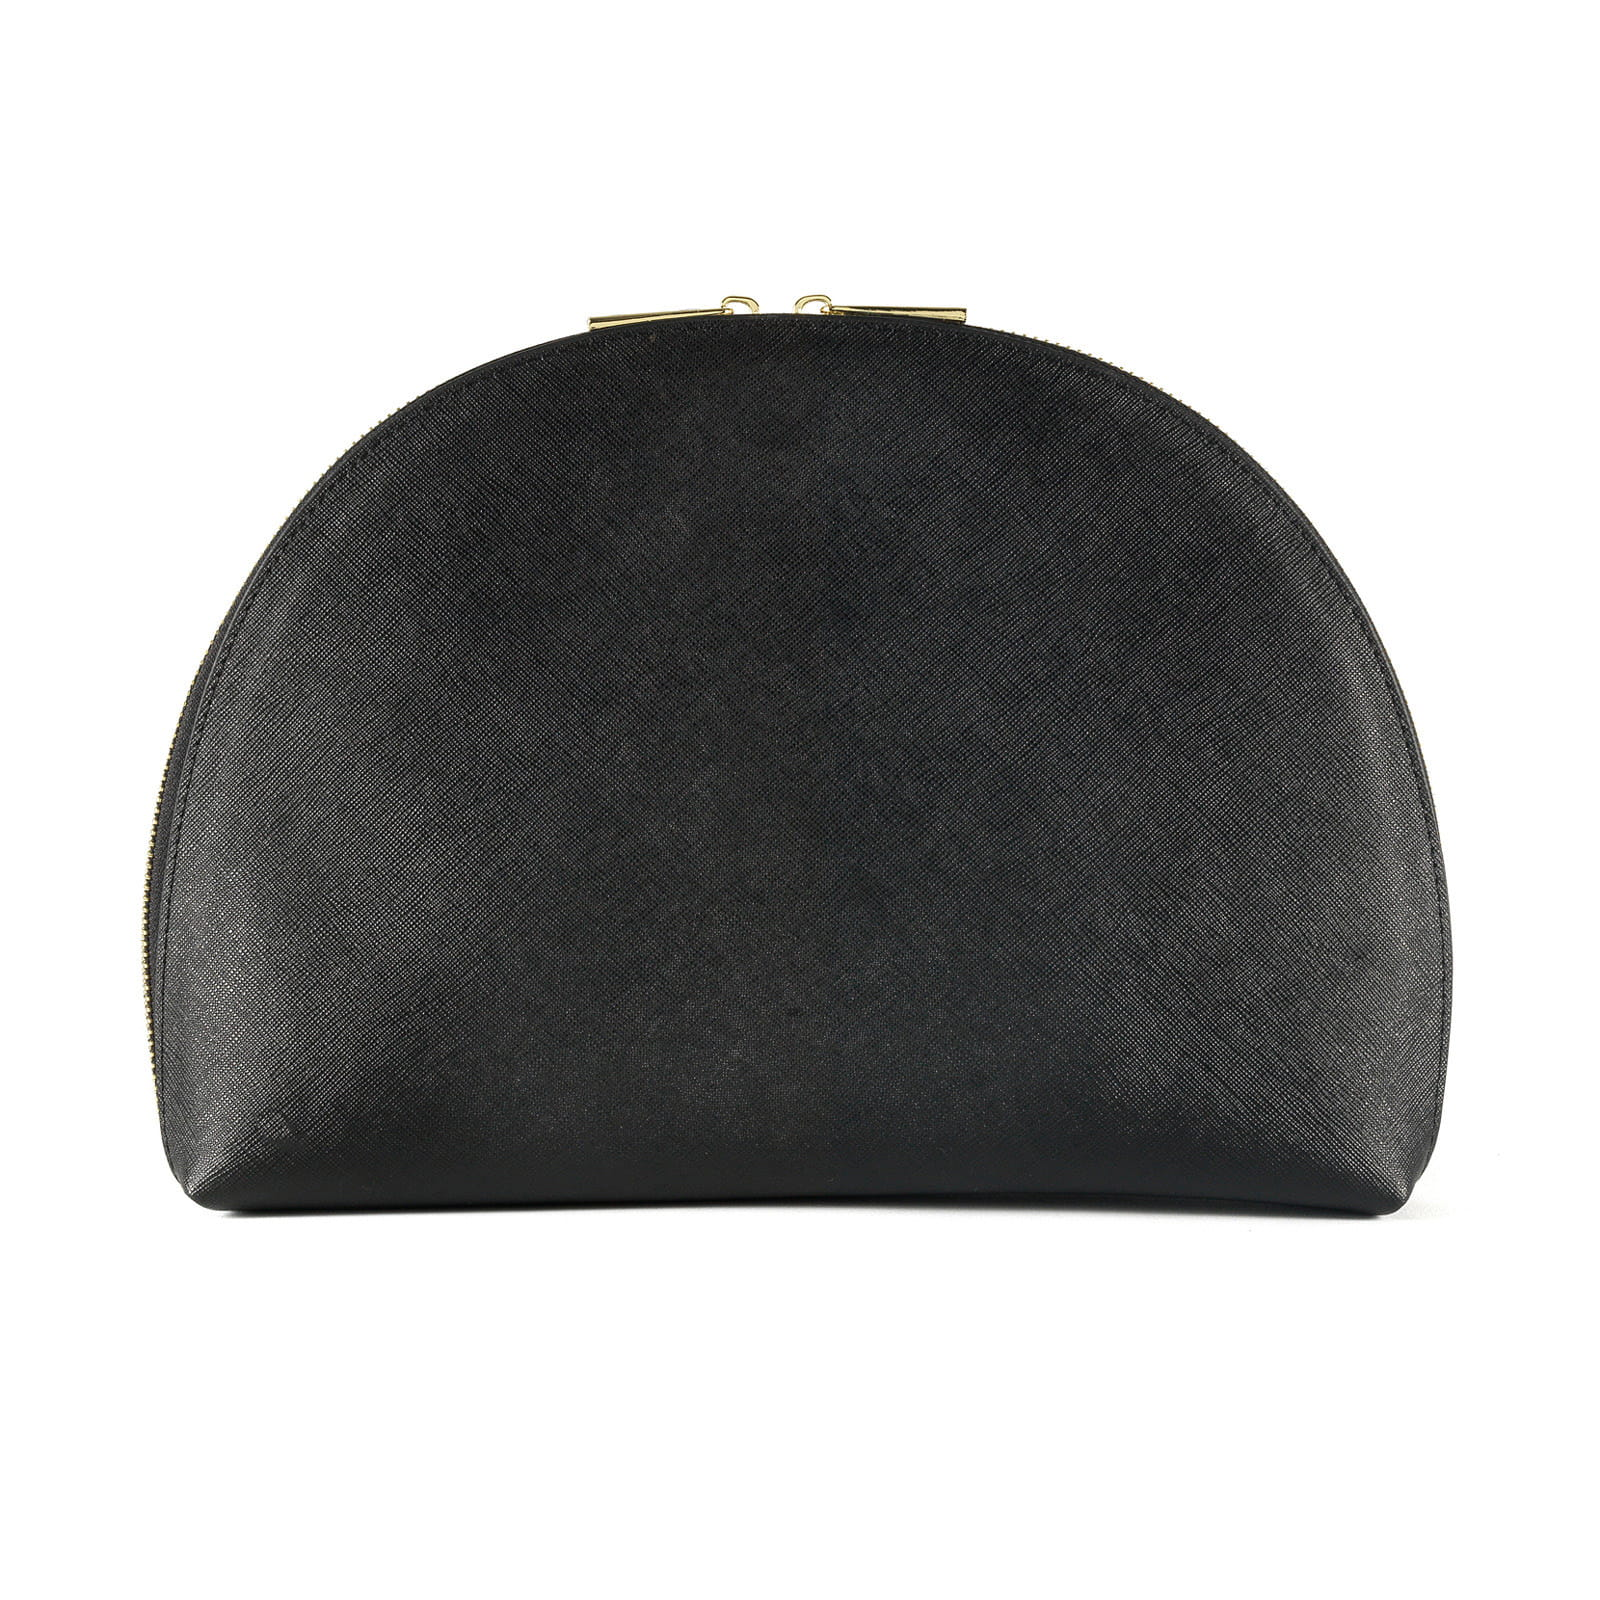 Blank Personalised Black Saffiano Leather Half Moon Clutch